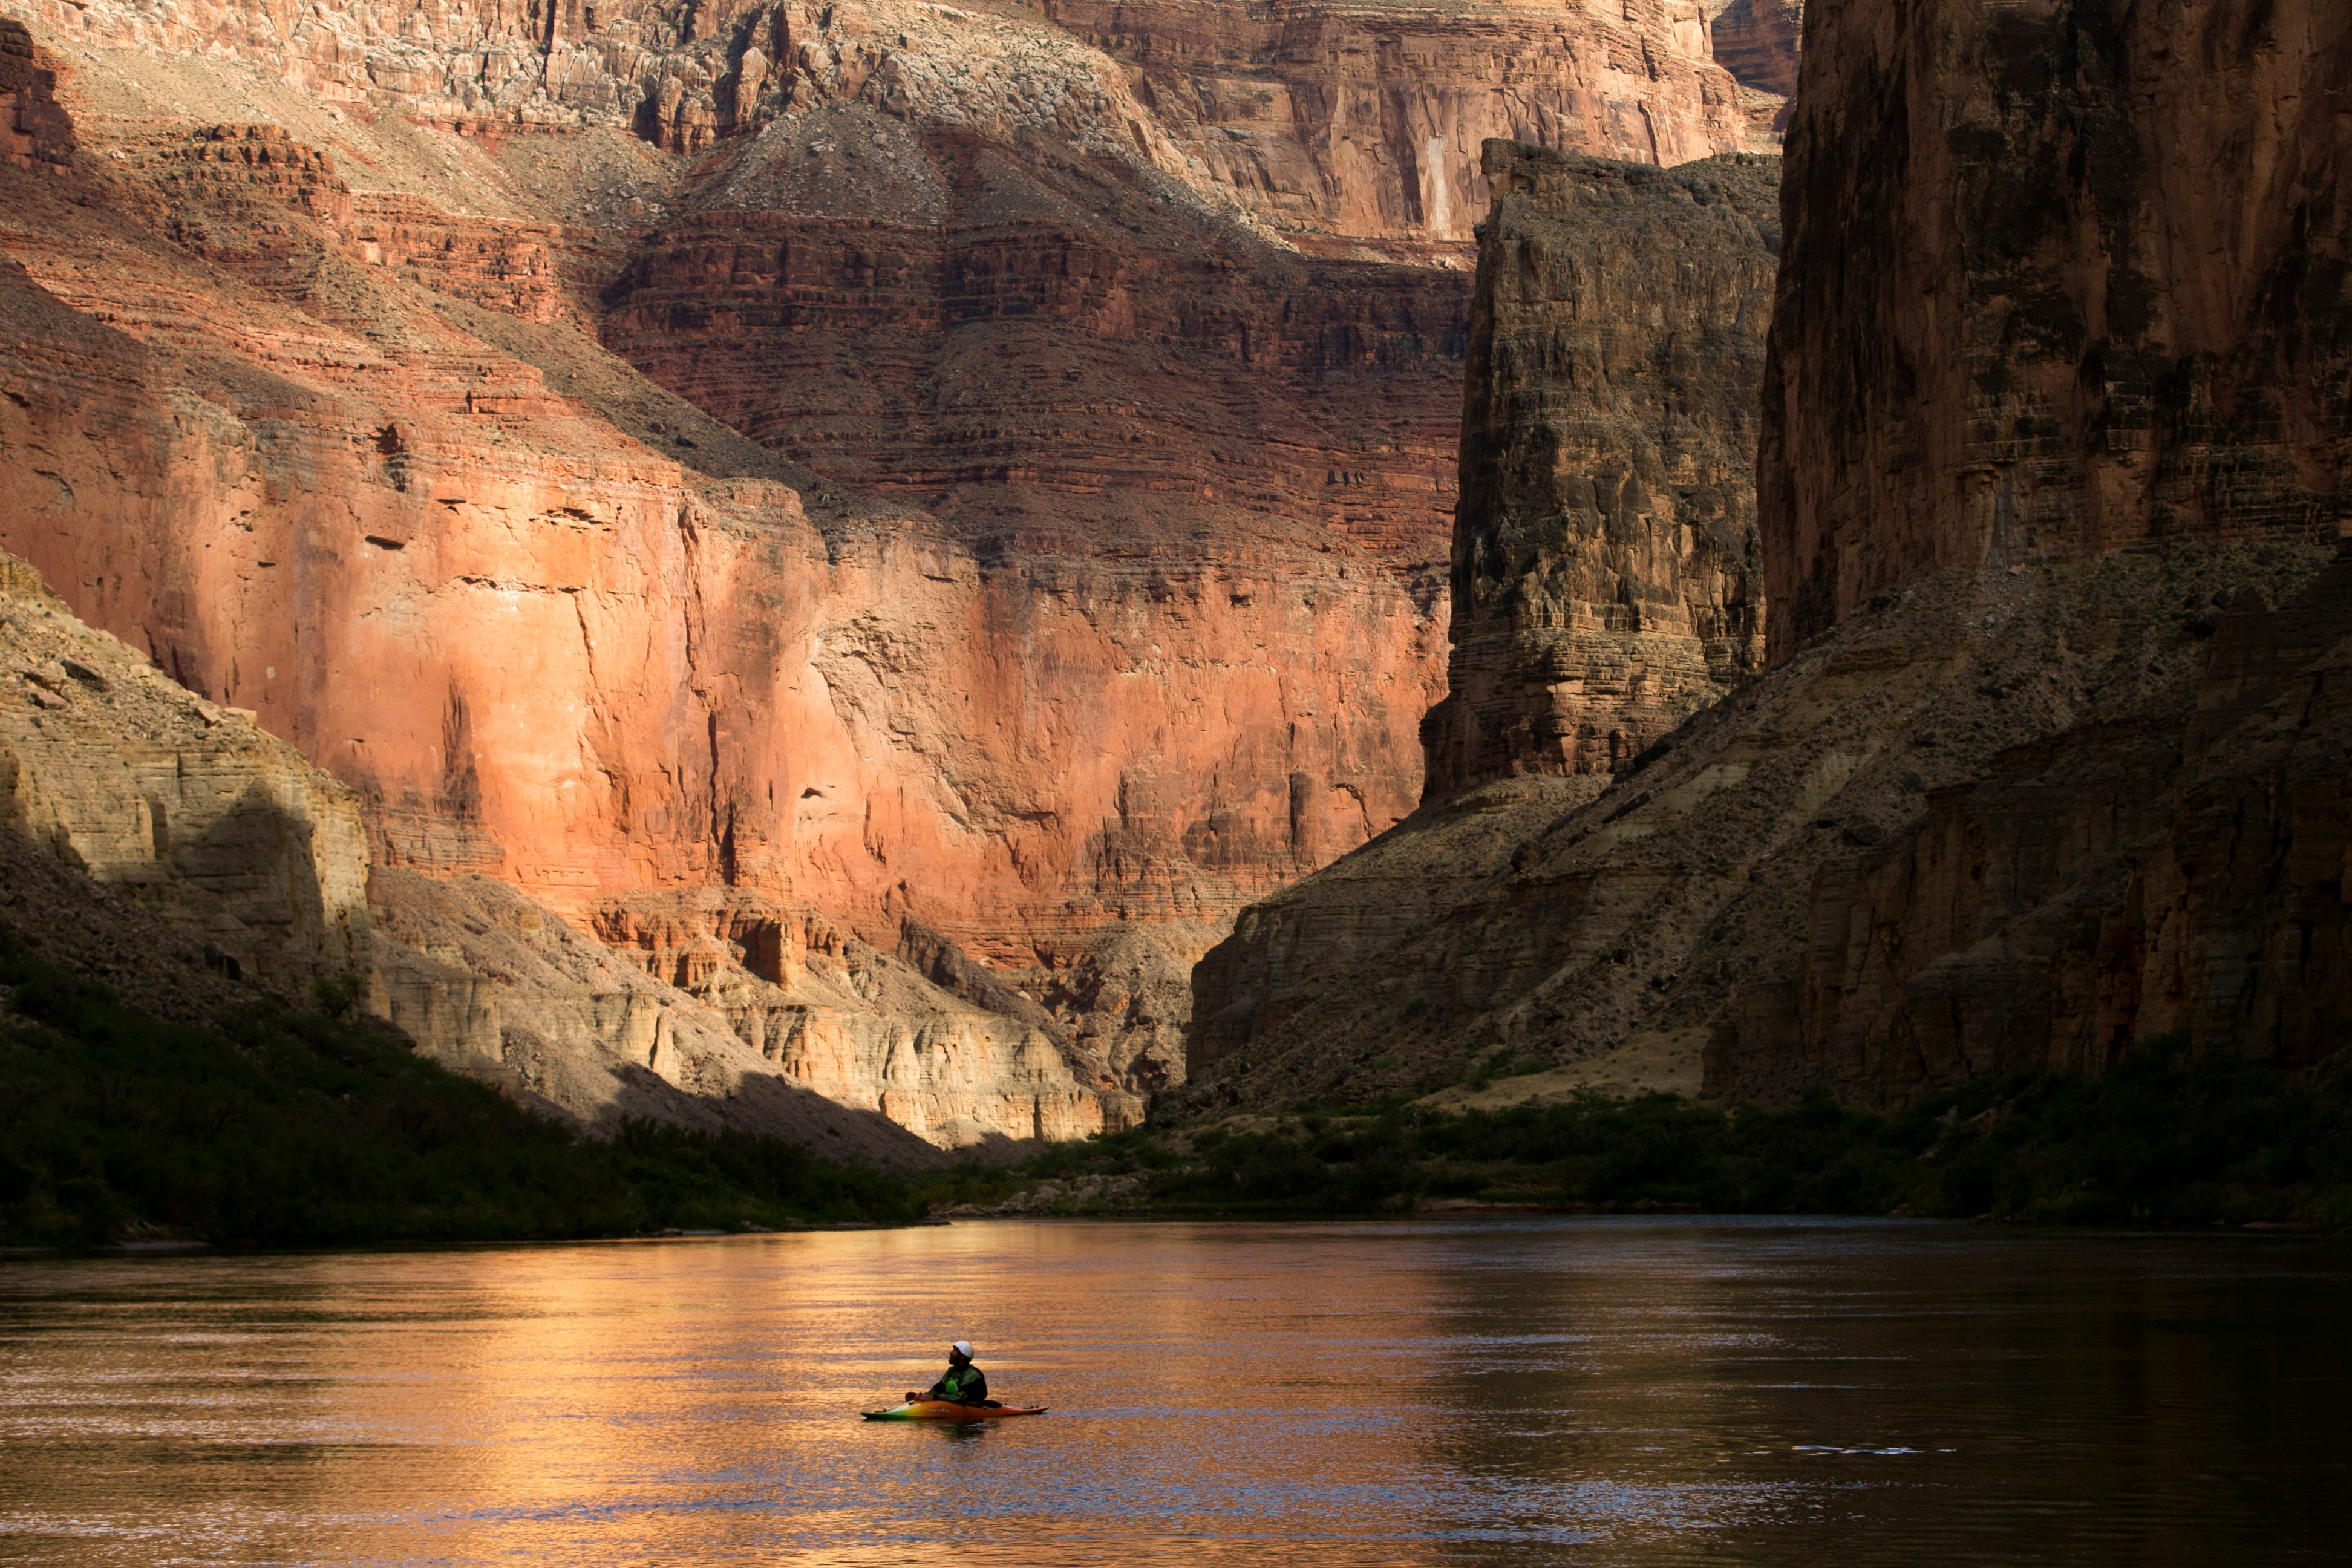 Ezra Jones takes in the canyon walls from his kayak on the Colorado River, on May 19, 2018, one of fewer than 30,000 people a year who experience Grand Canyon National Park this way.